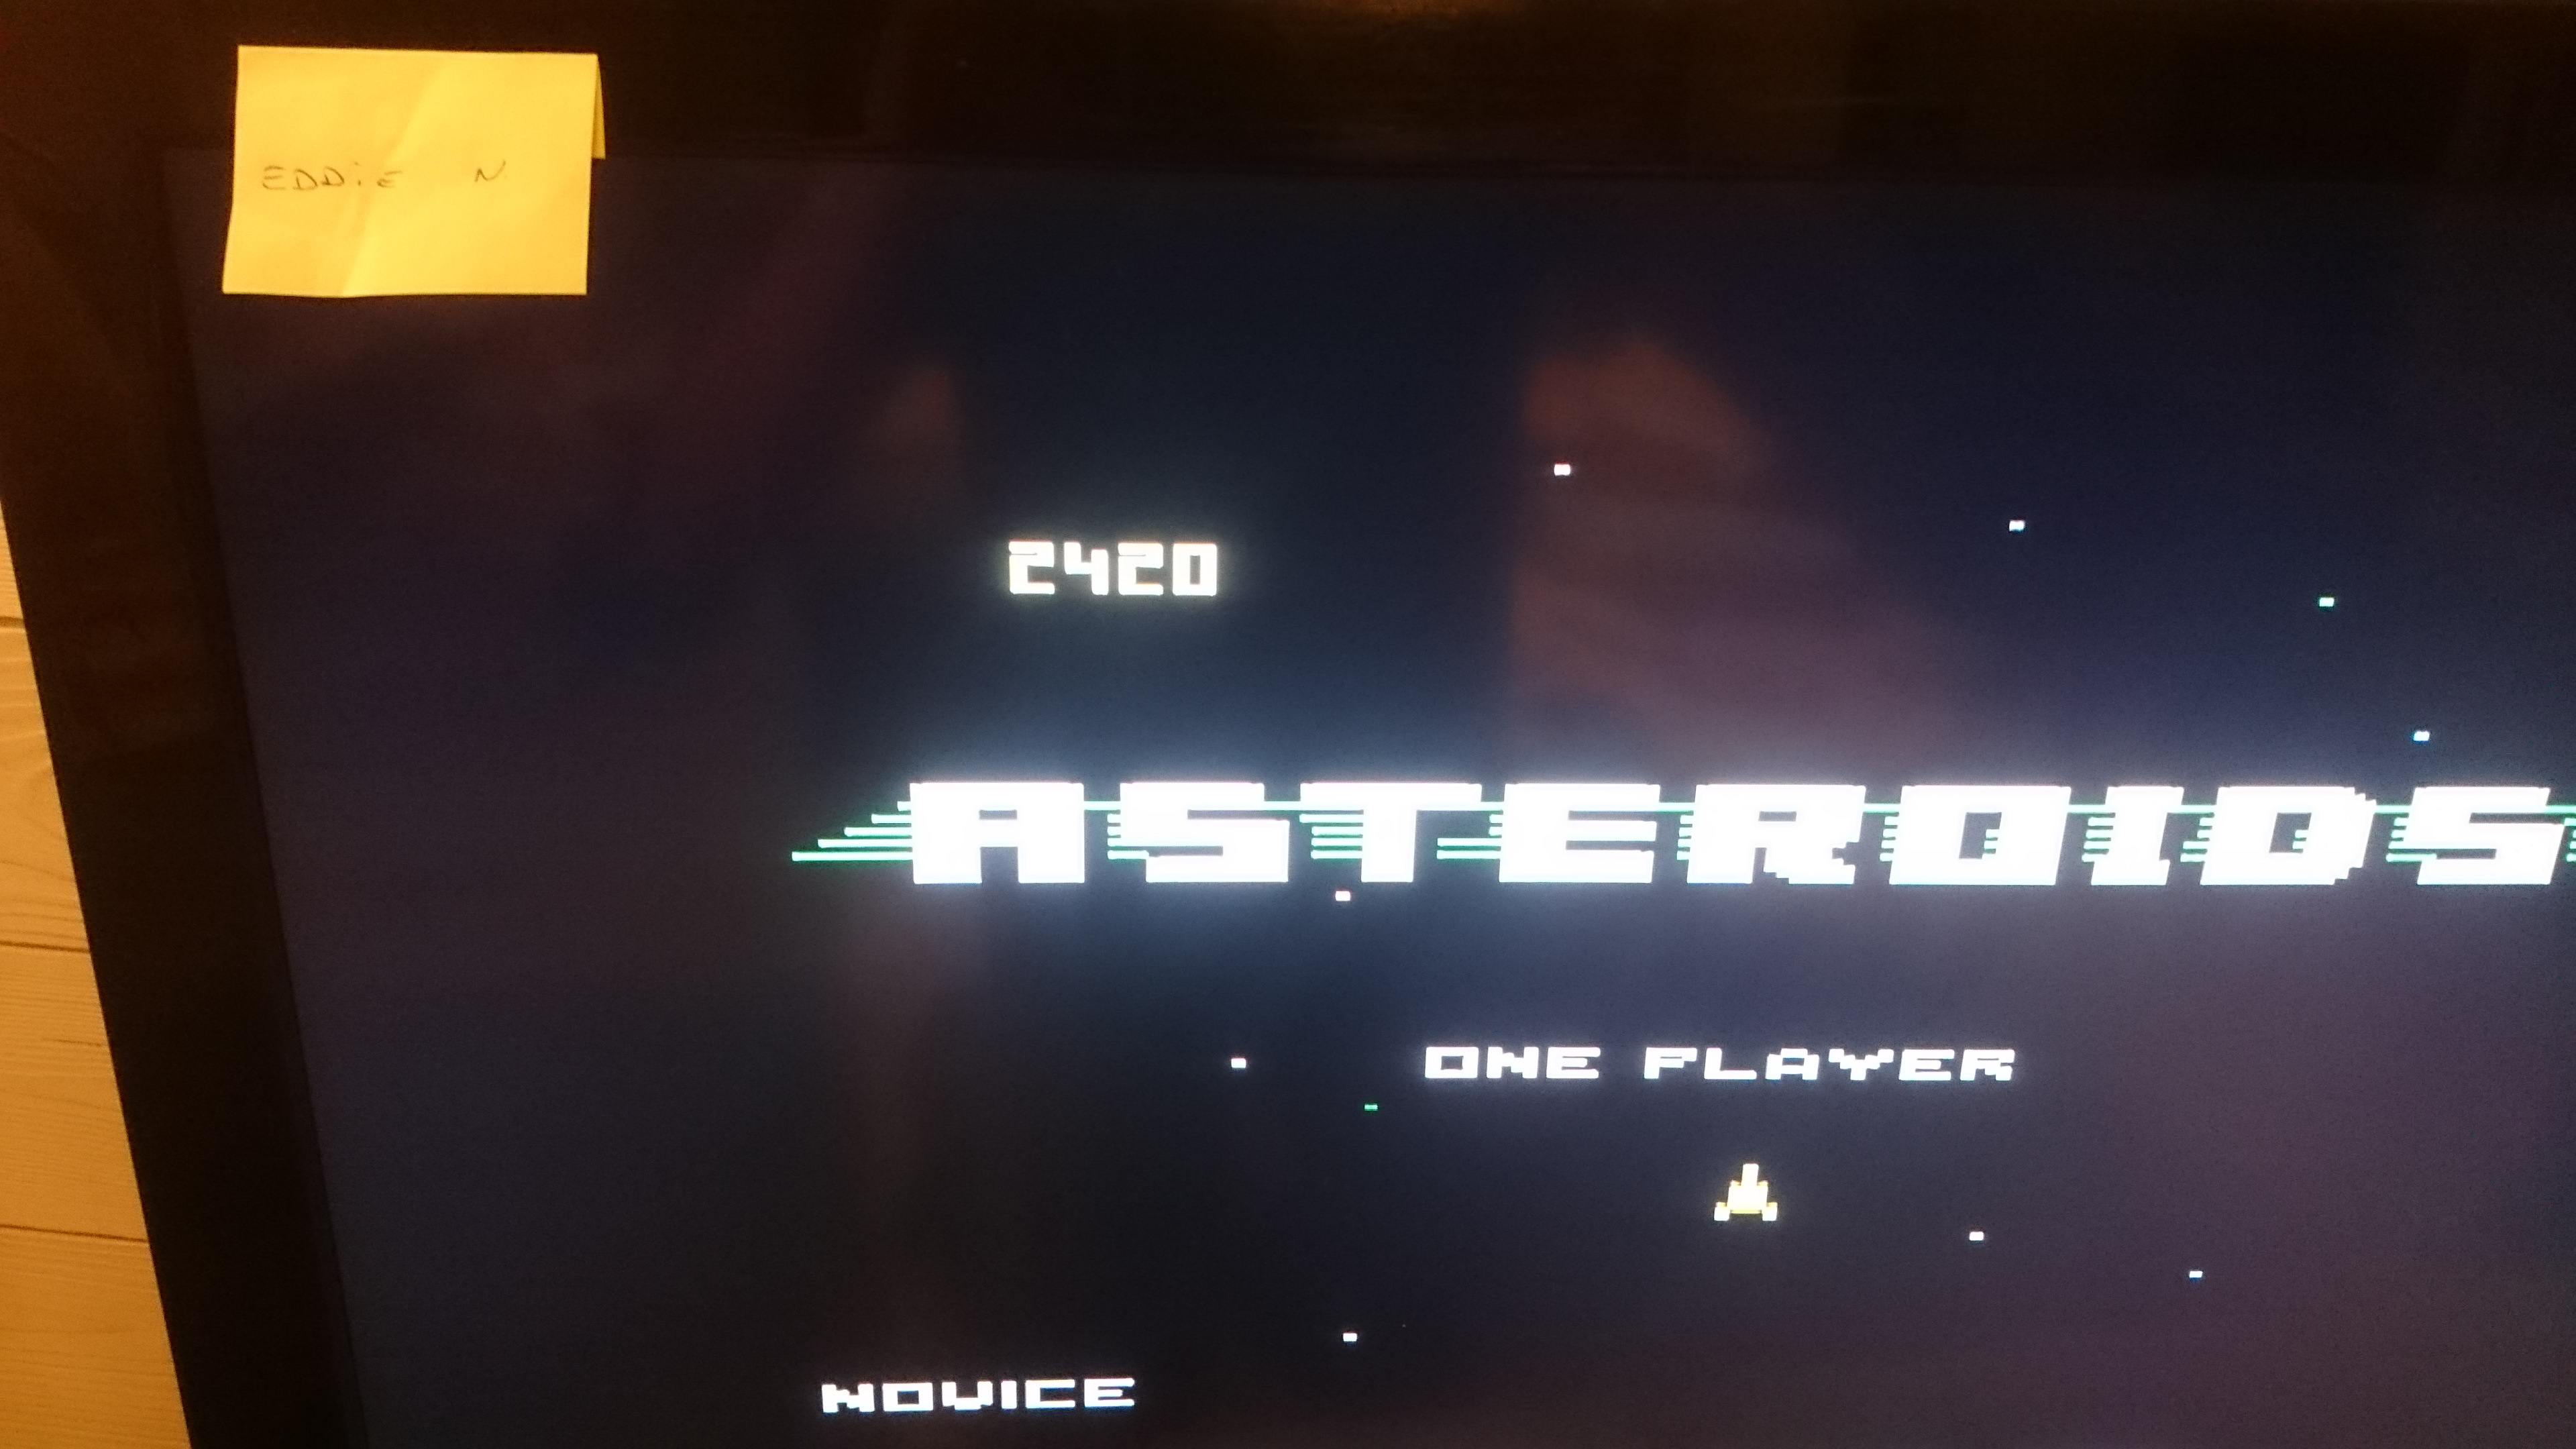 EddieNiceguy: Asteroids: Novice (Atari 7800 Emulated) 2,420 points on 2017-11-16 16:08:48